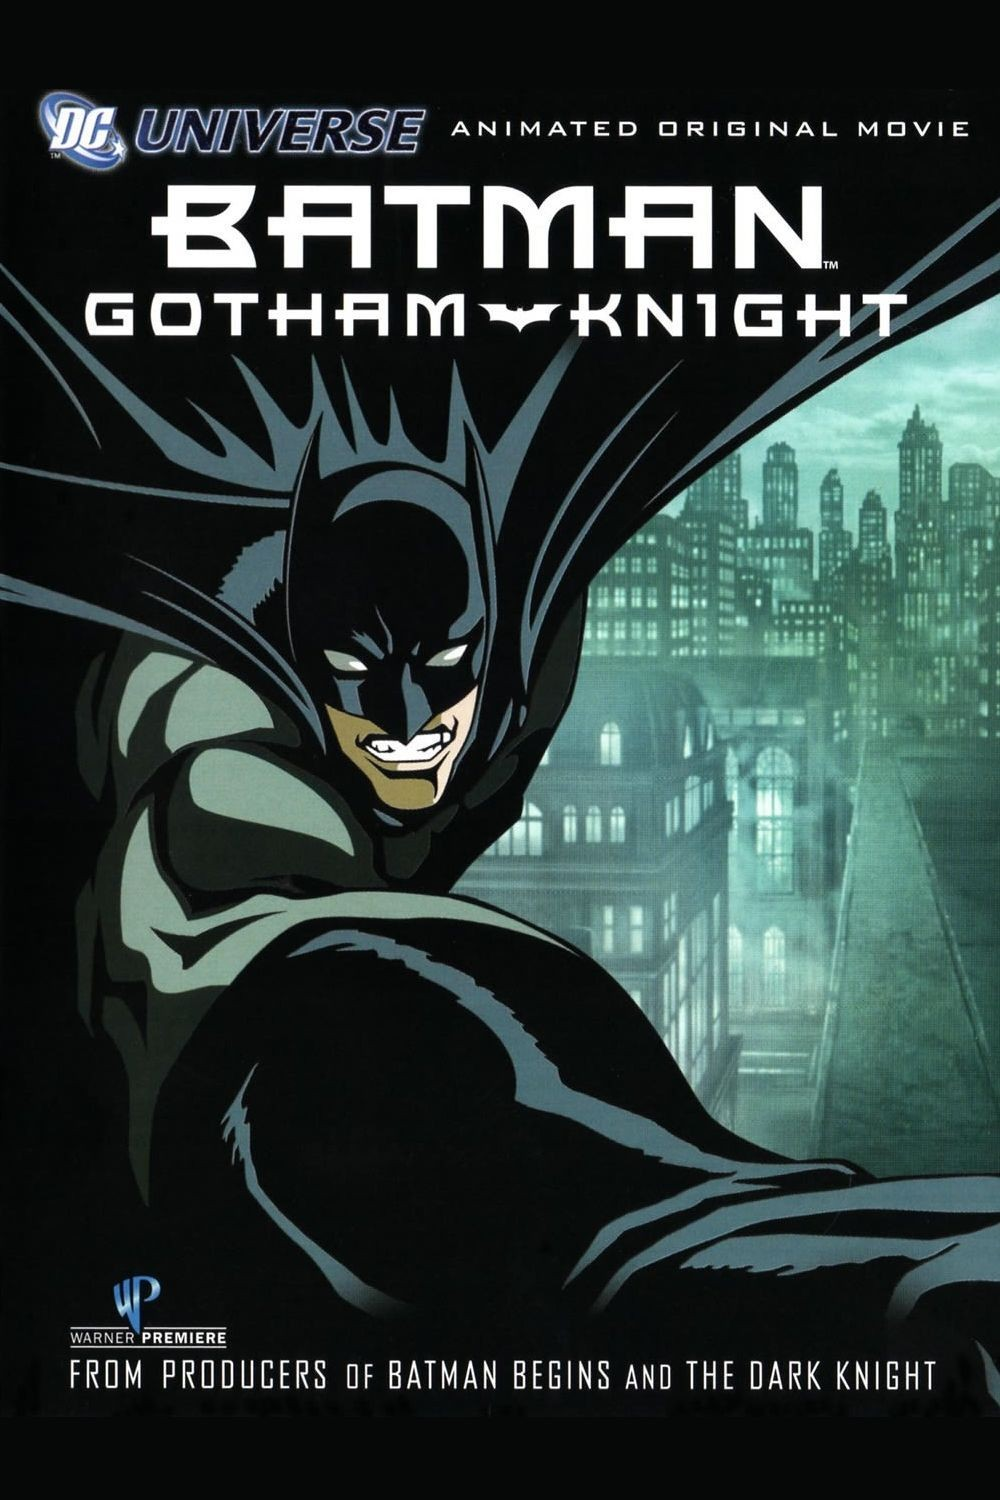 Filmes de DC Animated Universe (Original Movies) Batman-gotham-knight-original